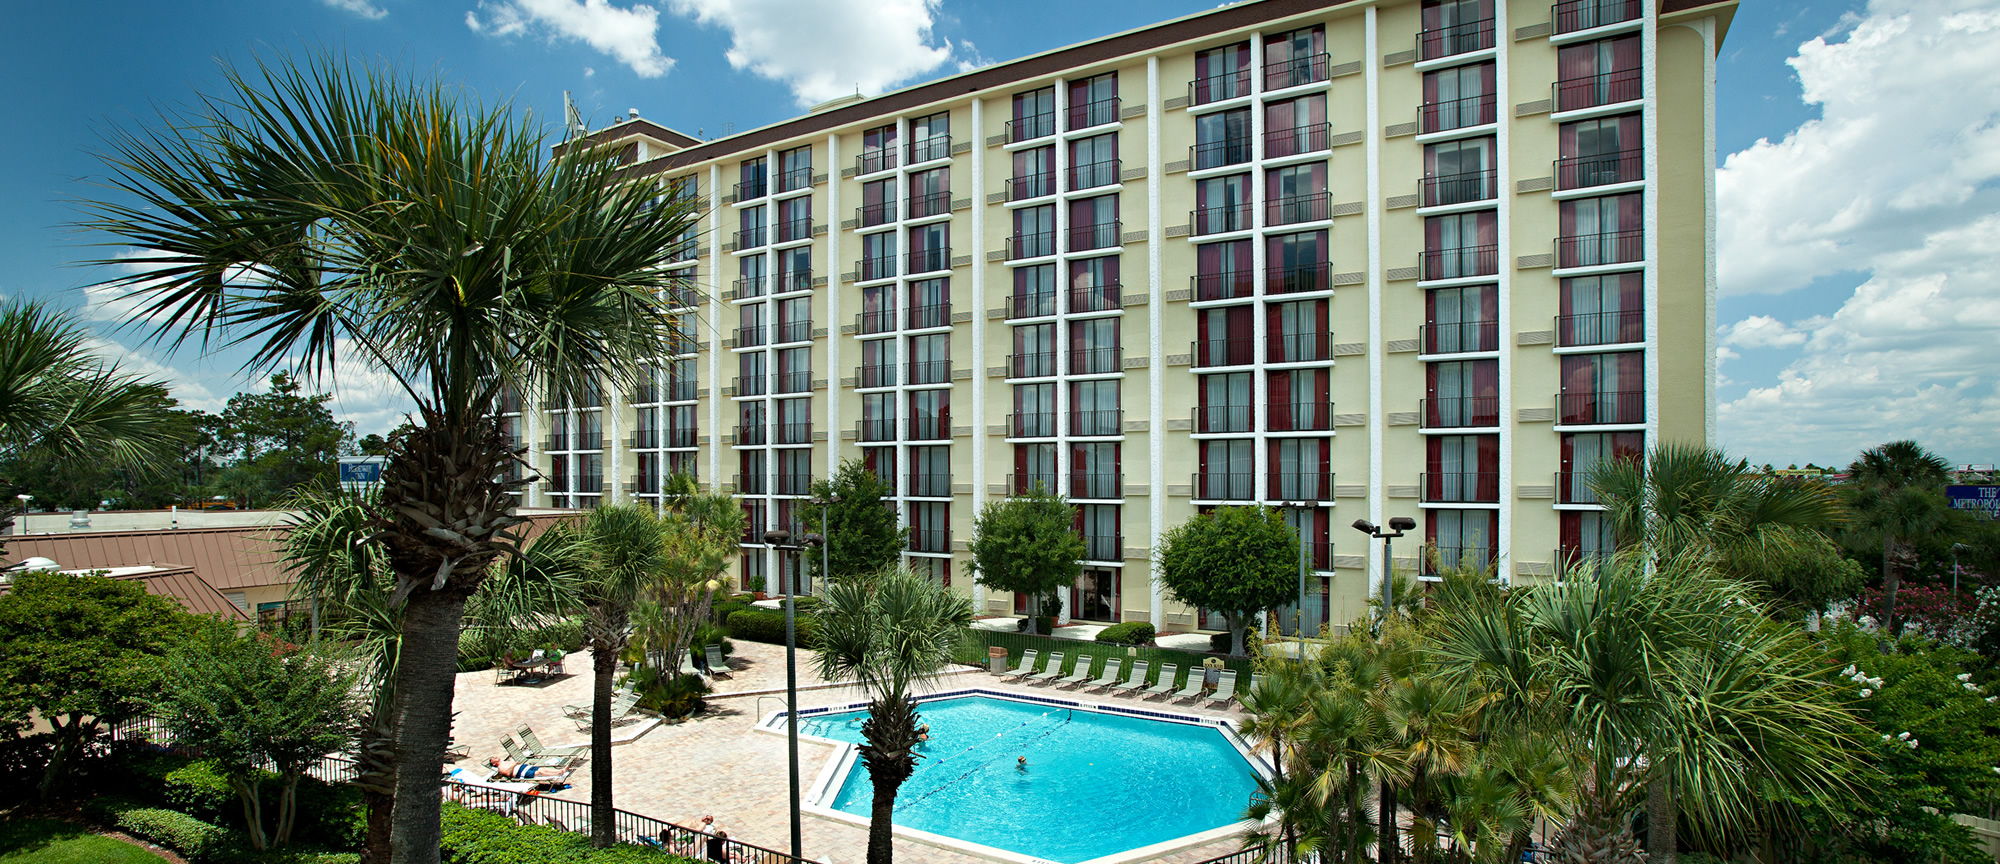 Hotel Near Universal Studios International Drive Orlando Value